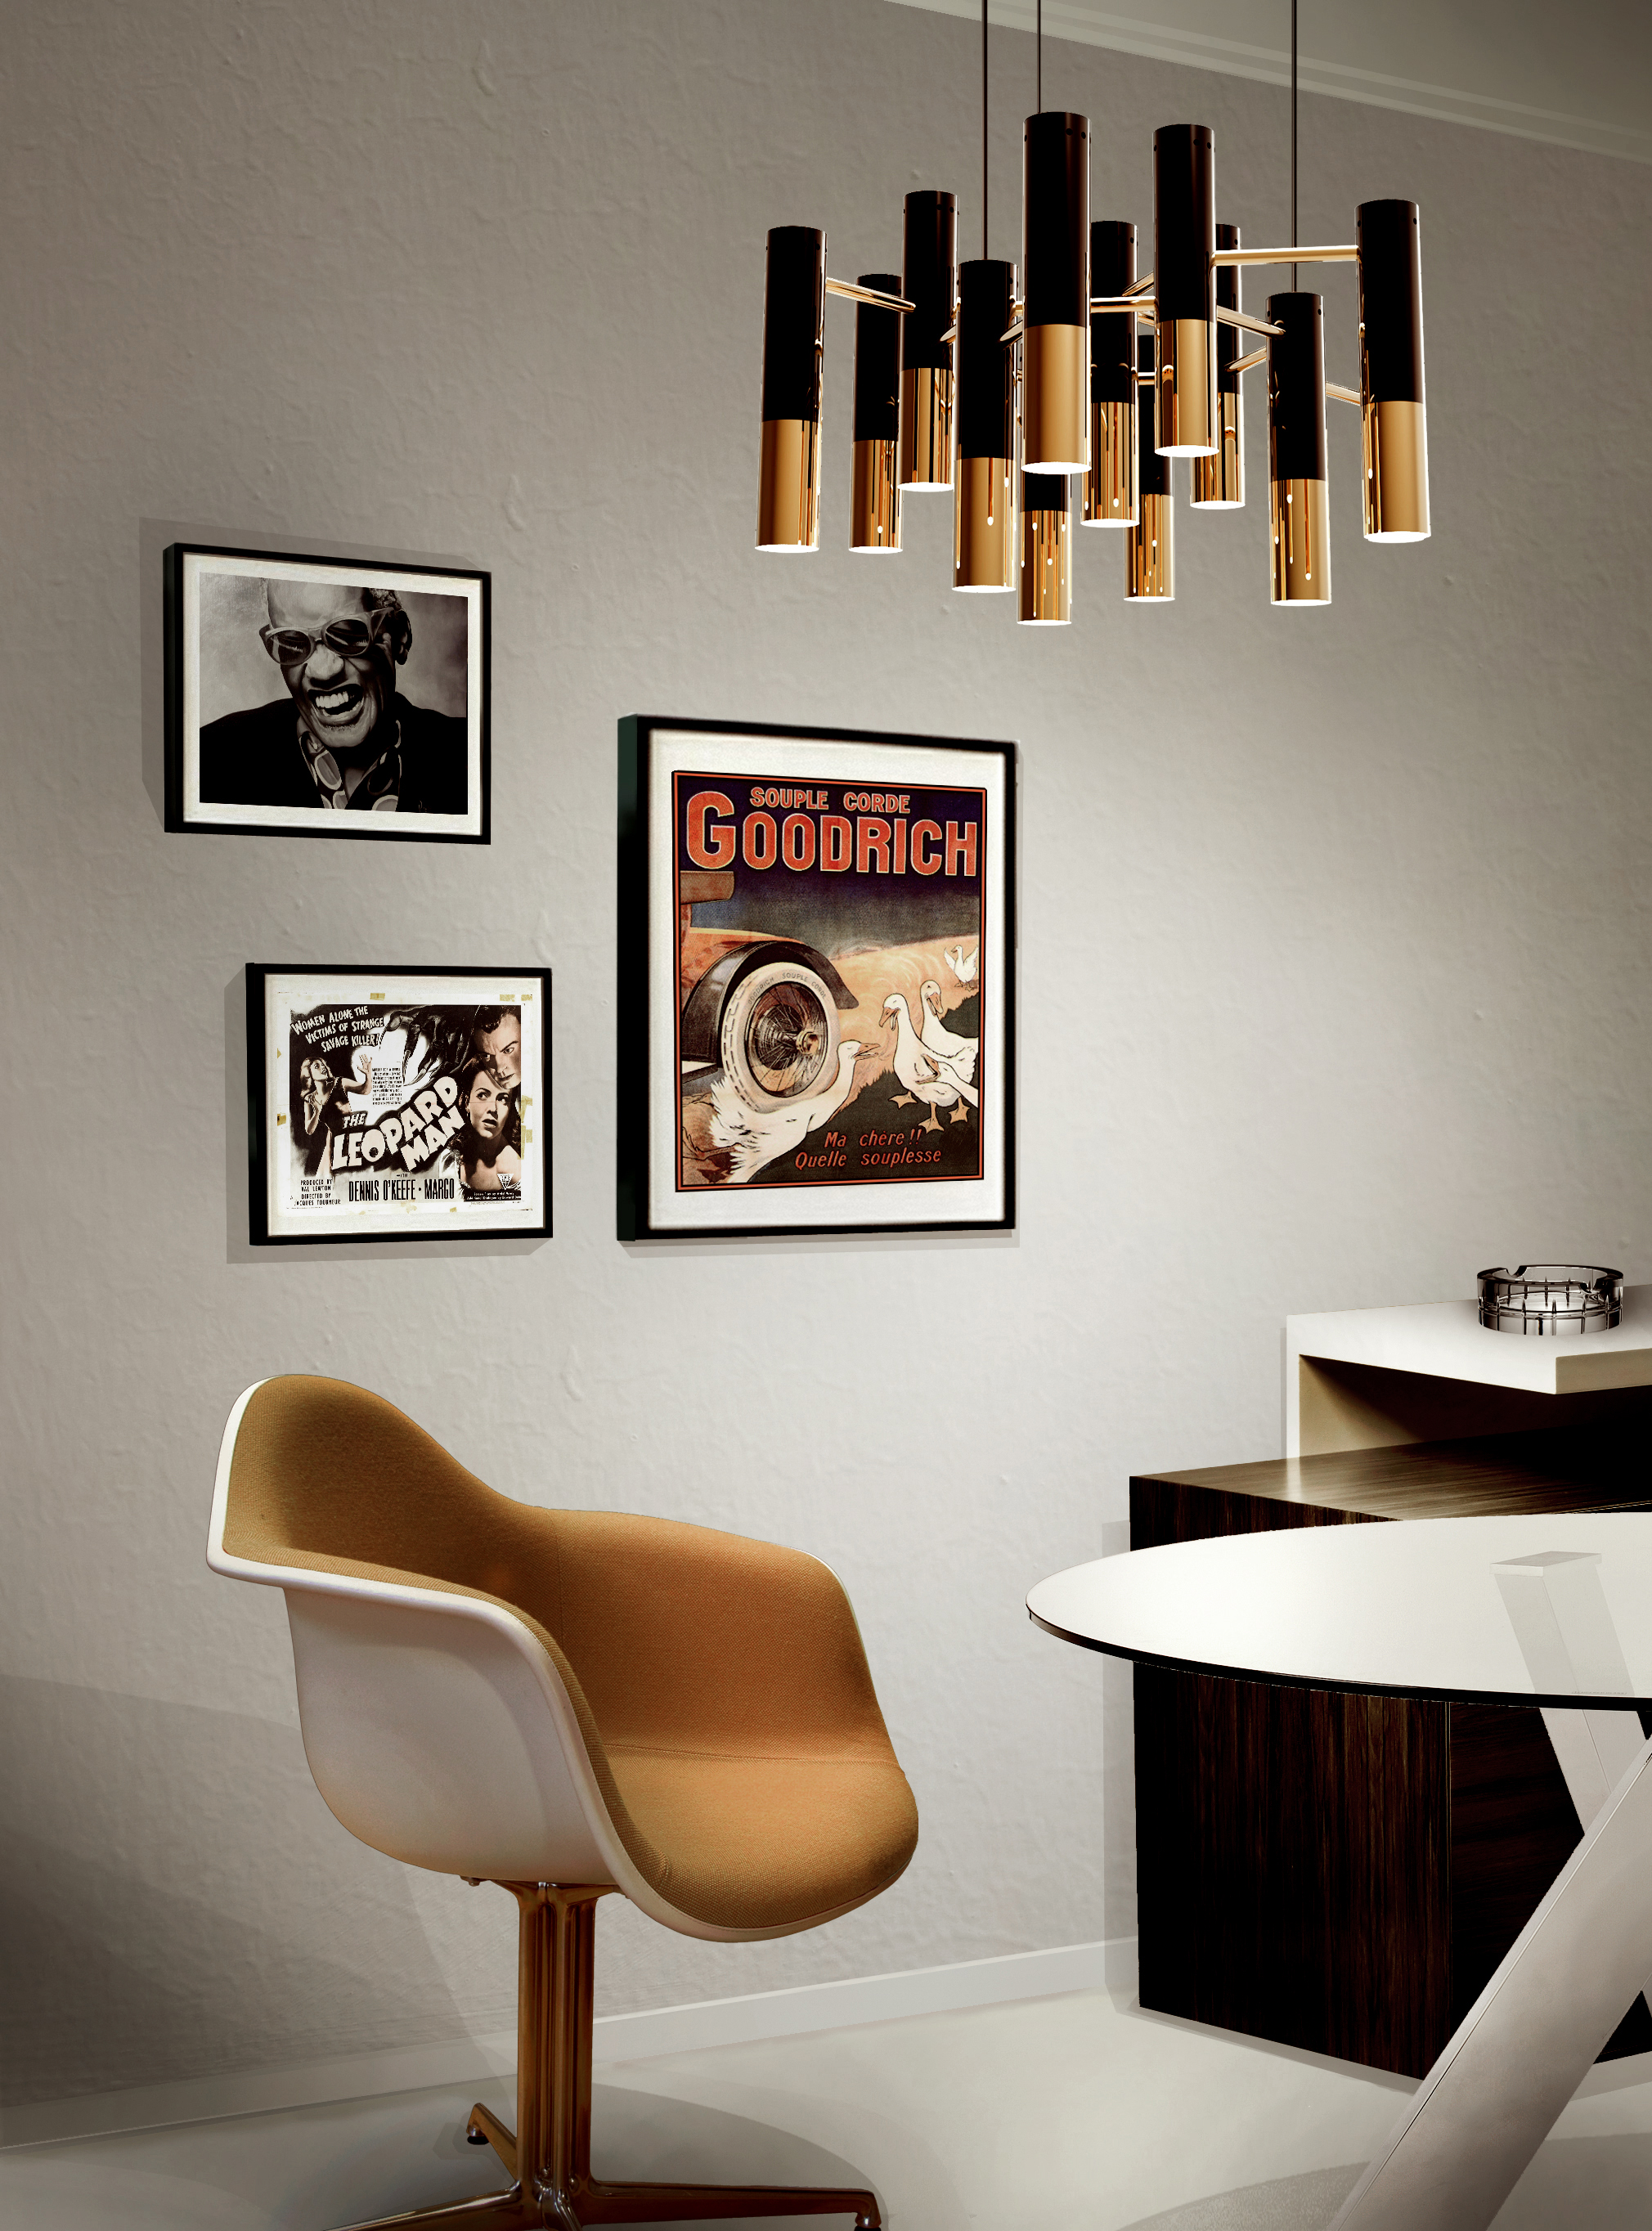 How Can Ike Suspension Lamp Give You Jazz And Soul Vibes 6 Ike Suspension Lamp How Can Ike Suspension Lamp Give You Jazz And Soul Vibes? How Can Ike Suspension Lamp Give You Jazz And Soul Vibes 6